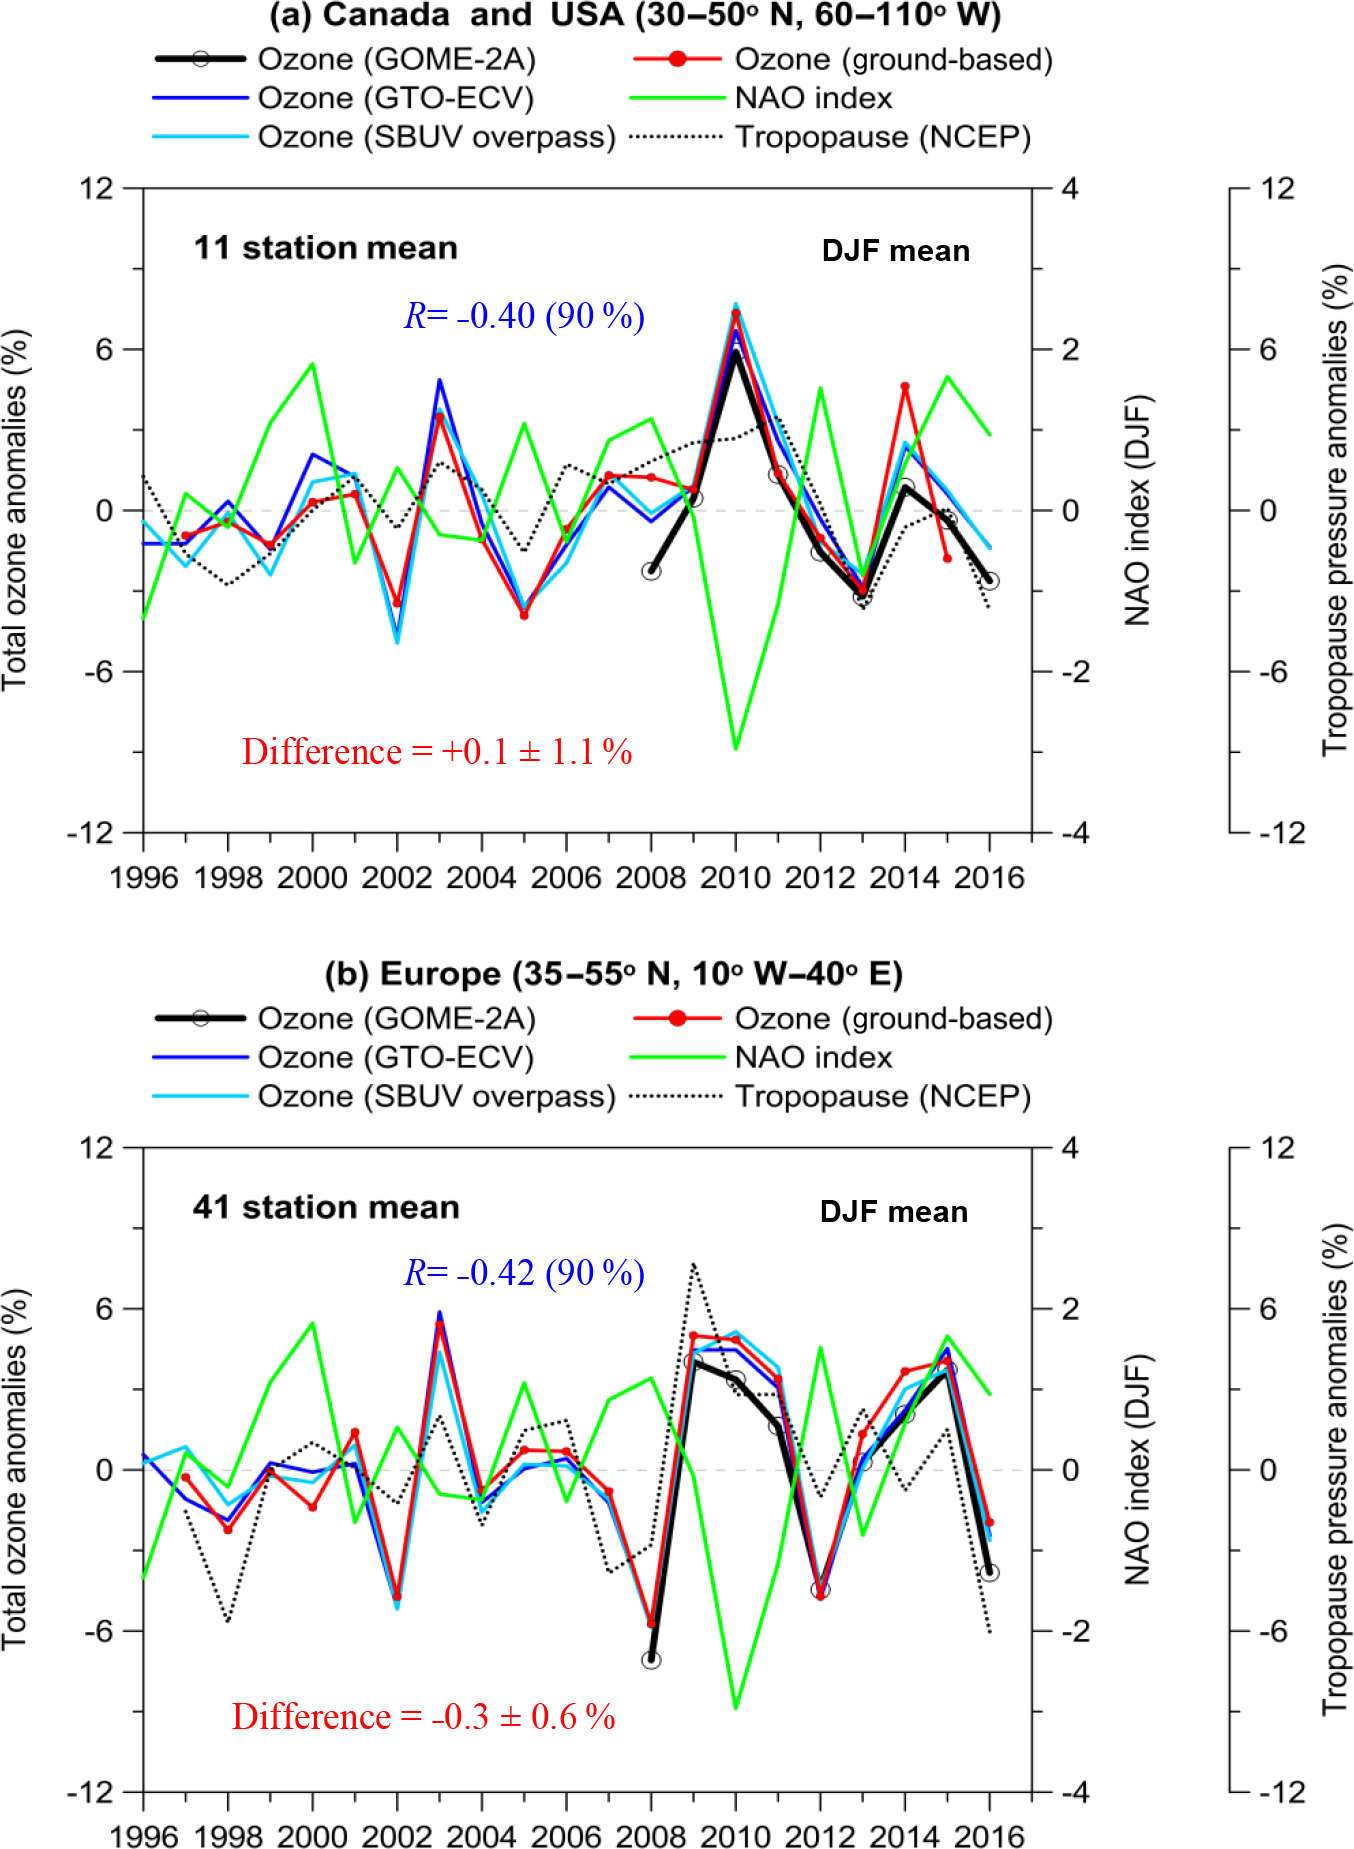 AMT - The use of QBO, ENSO, and NAO perturbations in the evaluation